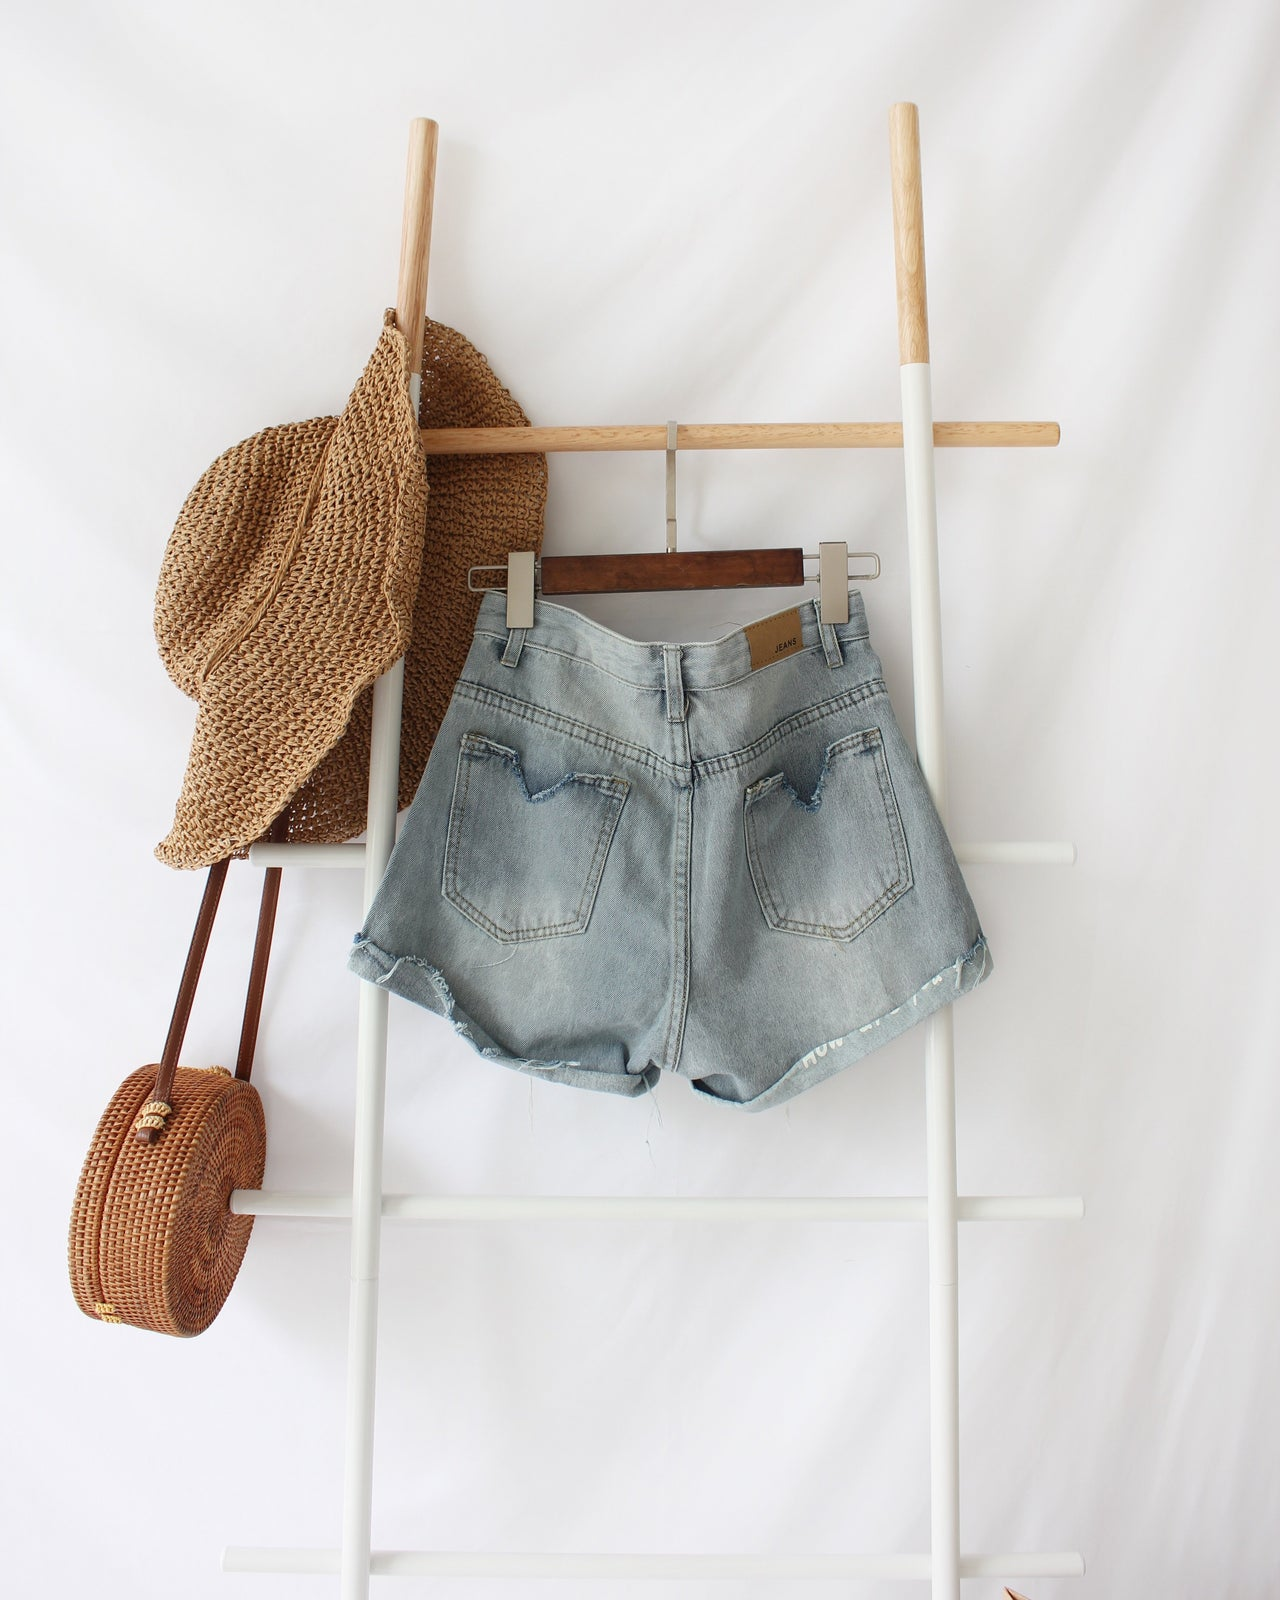 Denim High Waist Ripped Short - LovelyMadness Clothing Online Fashion Malaysia